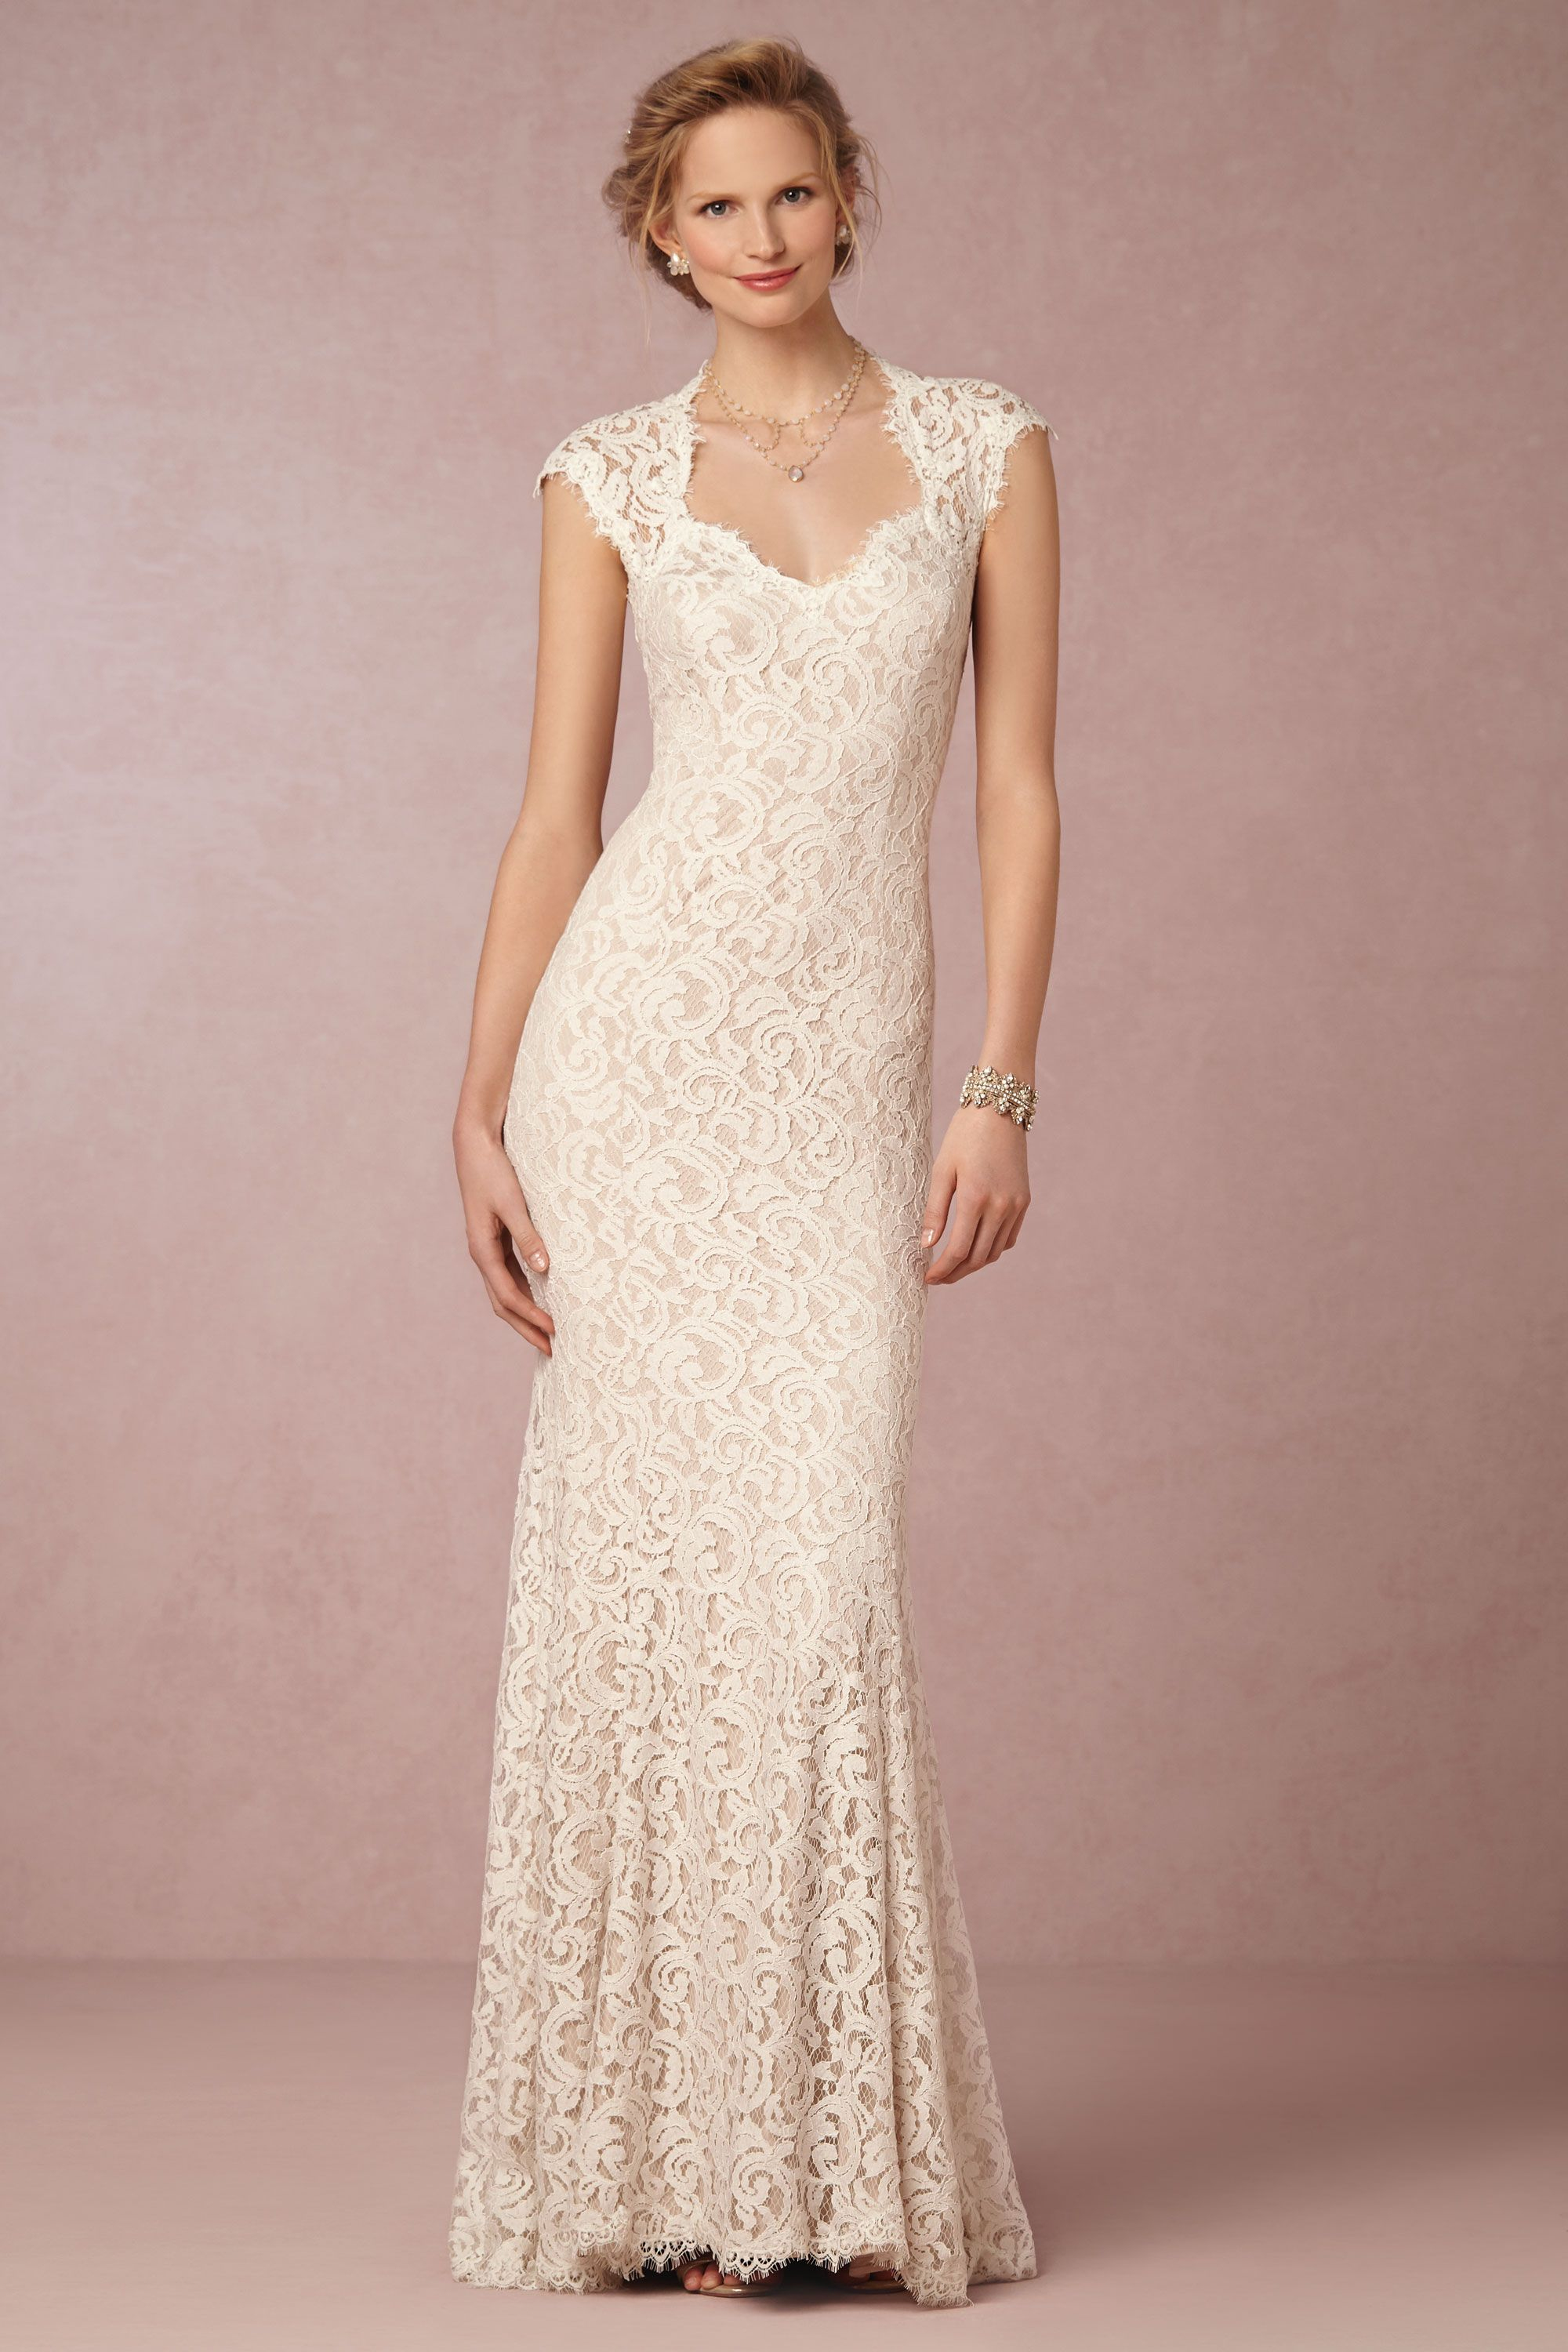 Marivana Lace Gown